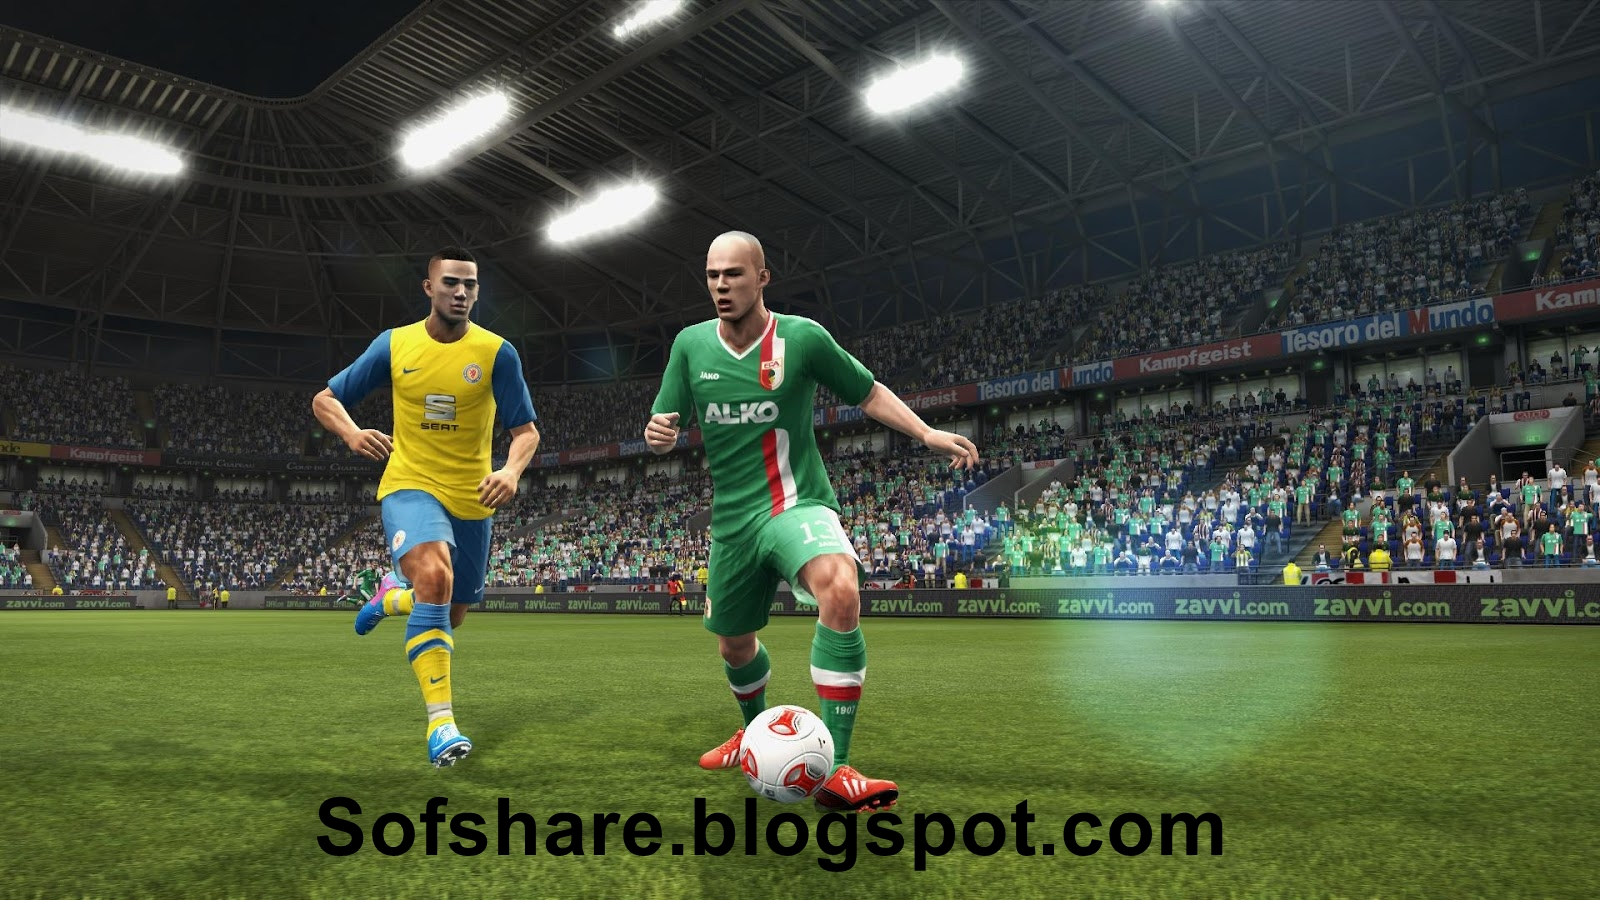 PES 2013 Patch Pro Evolution Soccer 2013 - Play Online